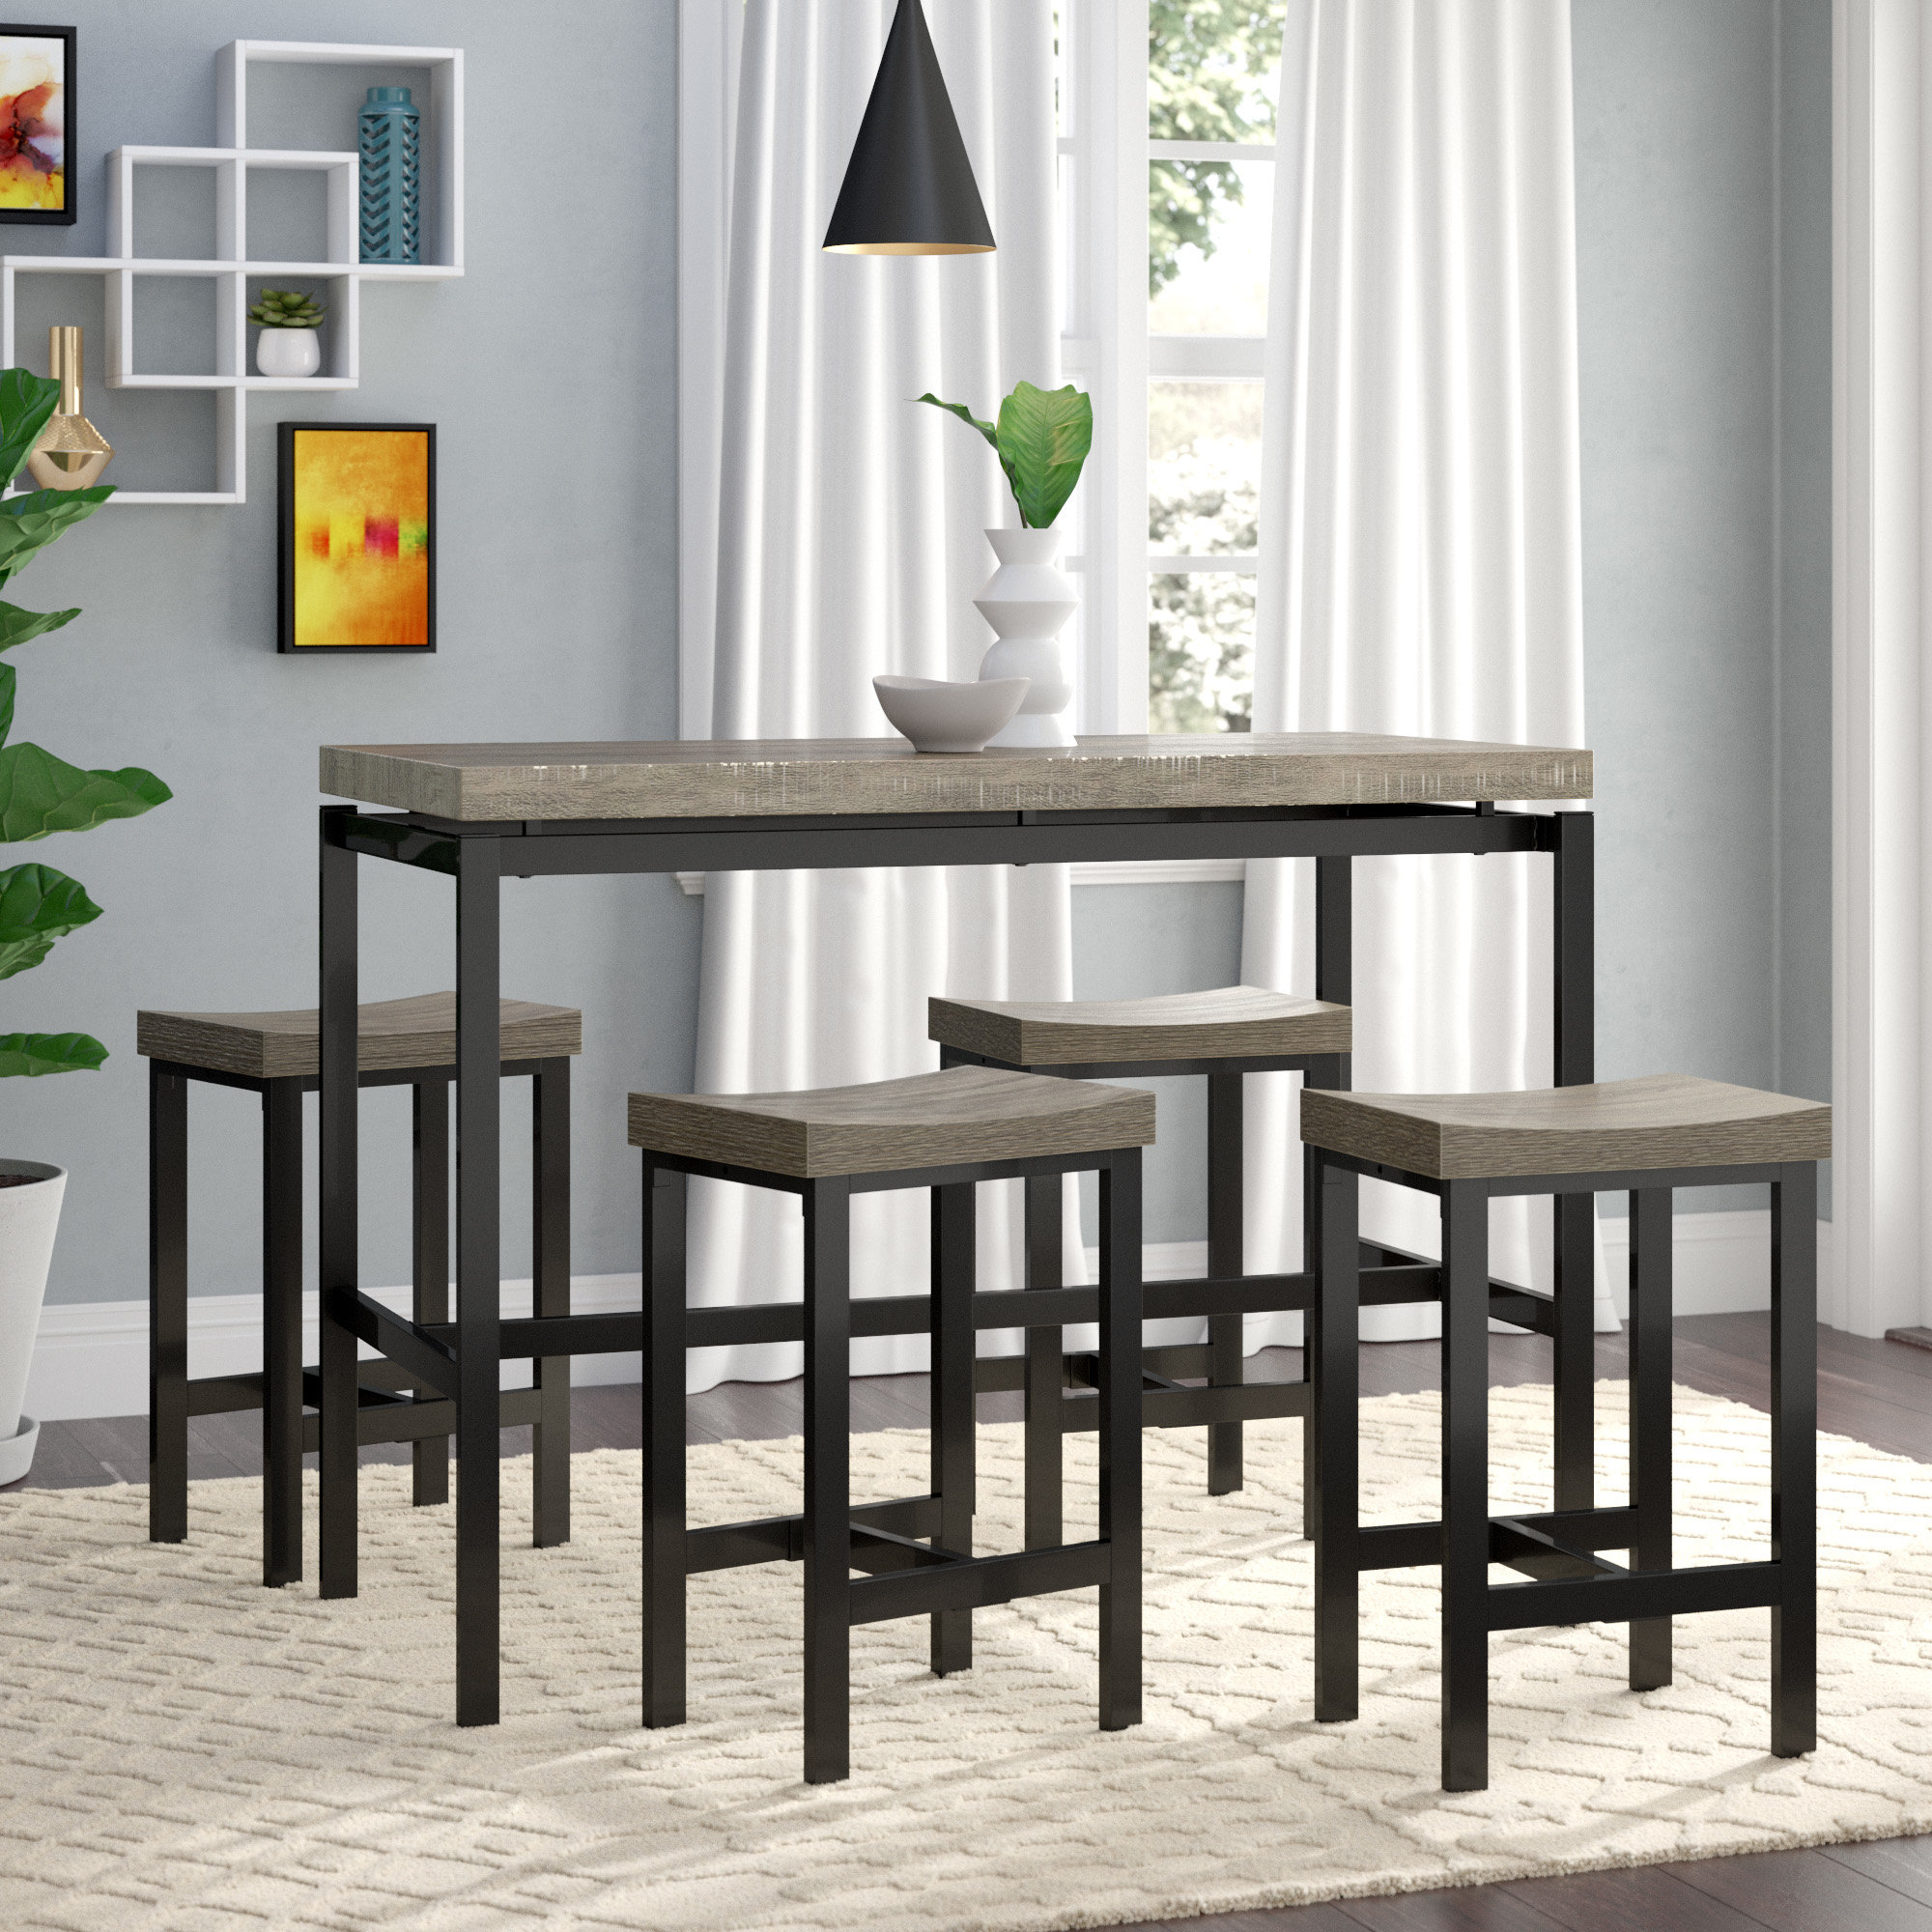 Wayfair Within Well Known Miskell 5 Piece Dining Sets (View 24 of 25)